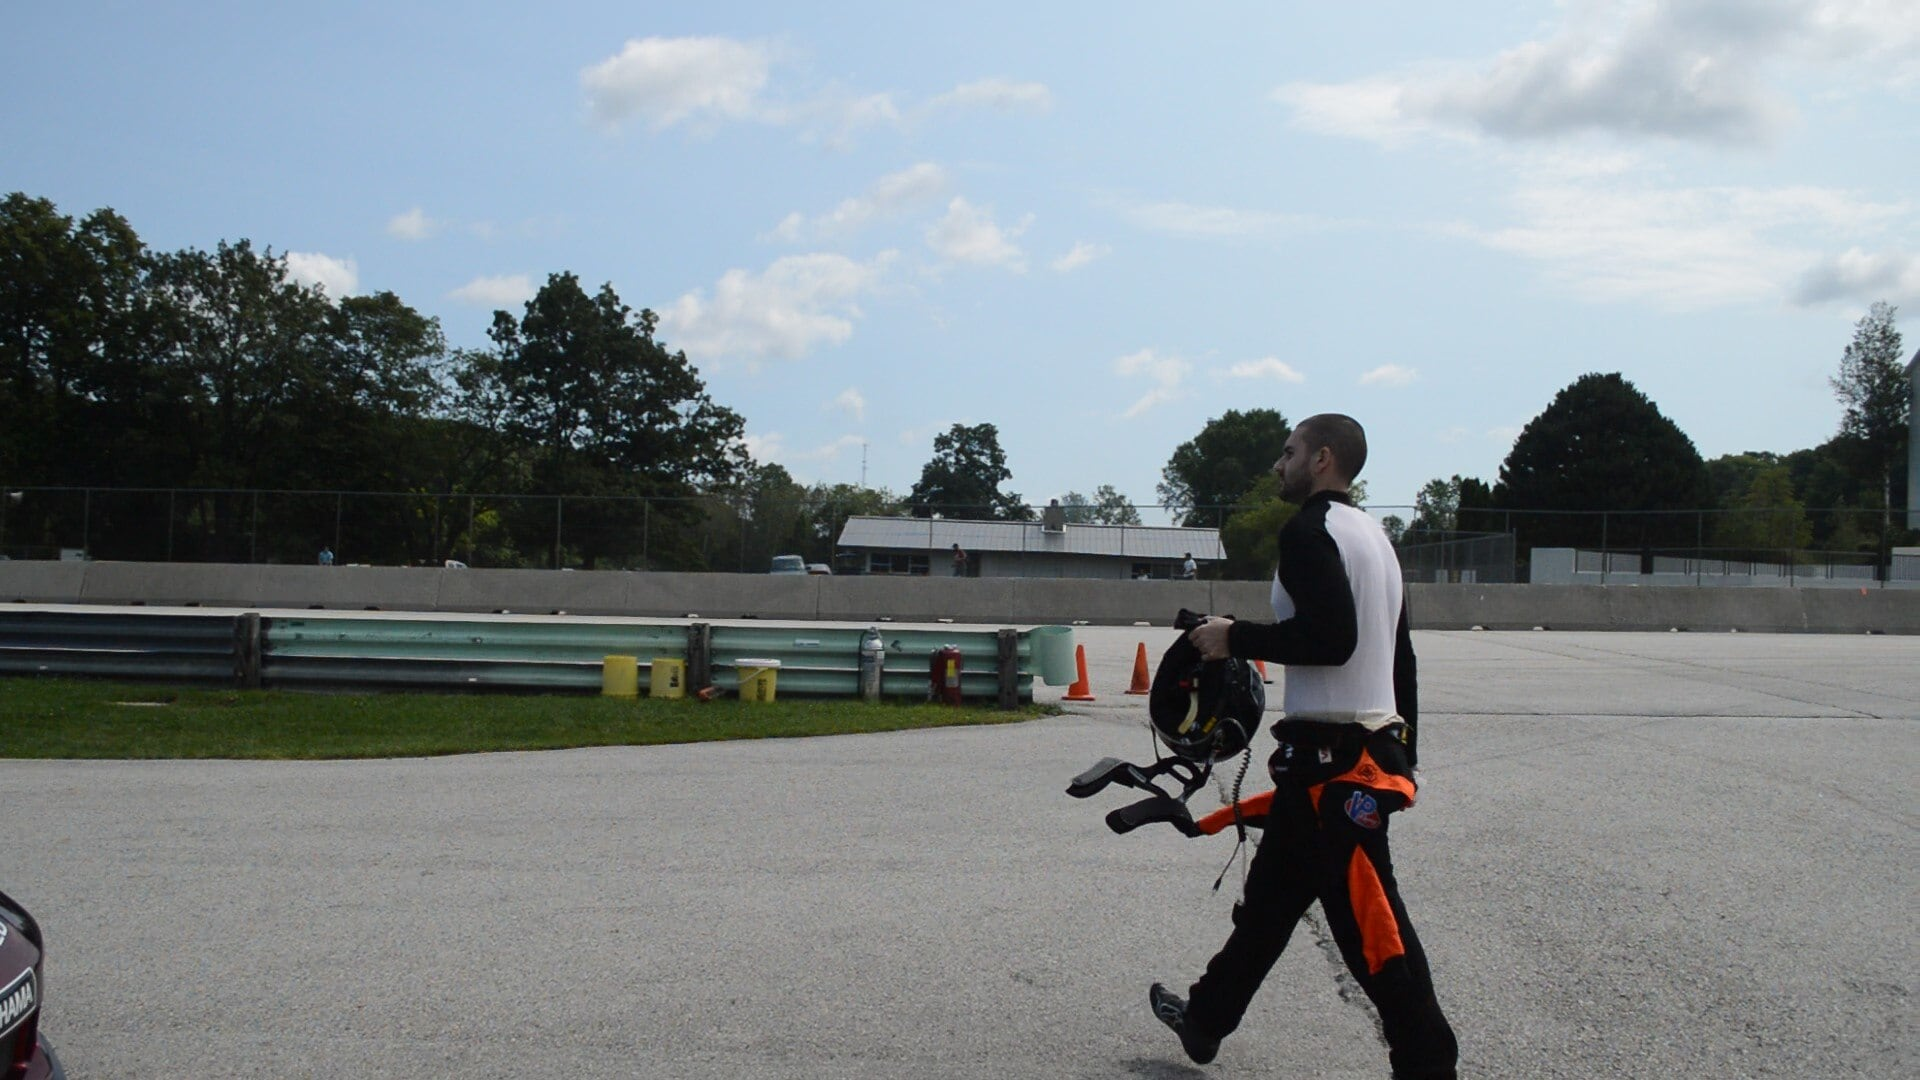 Anthony Imperato Jr heads onto the track prior to the start of the race. (Photo: Kristin Alberts)